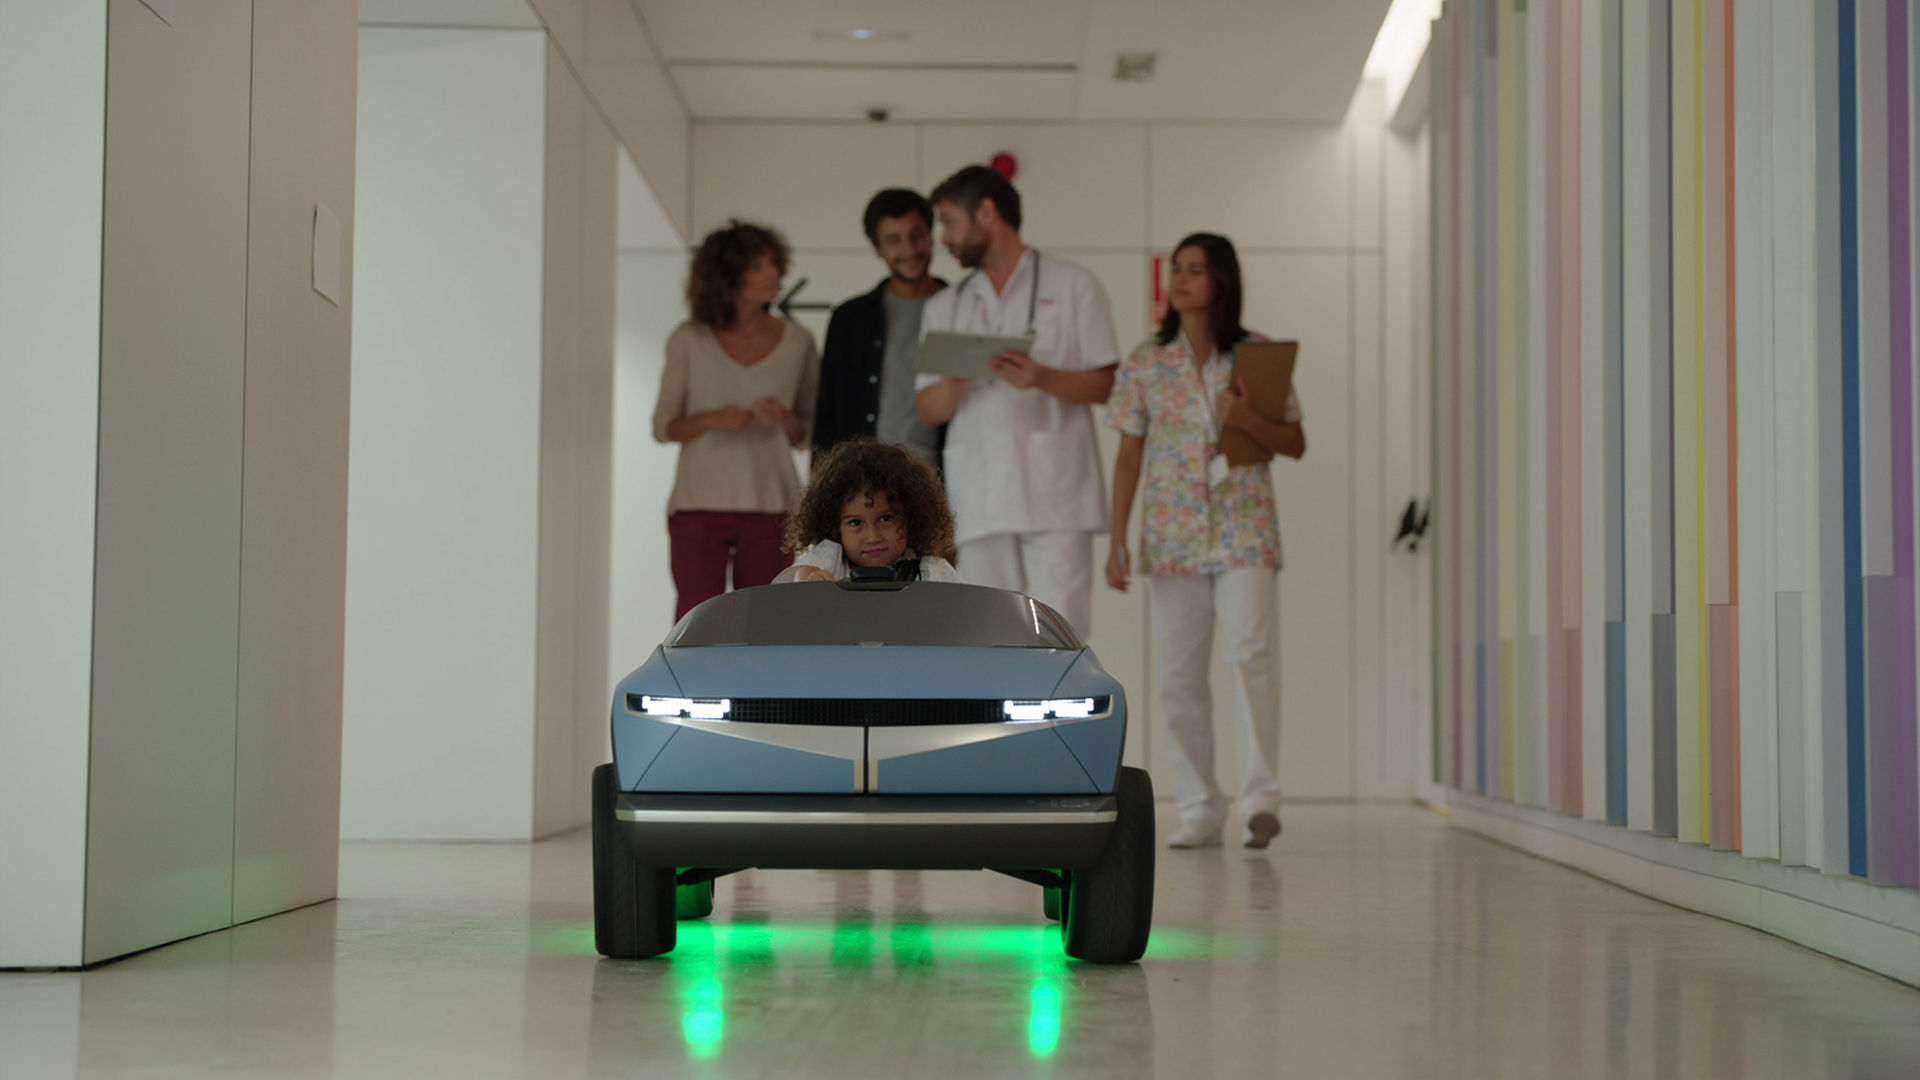 Hyundai-ev-45-kid-car-balcelona-hospital-4